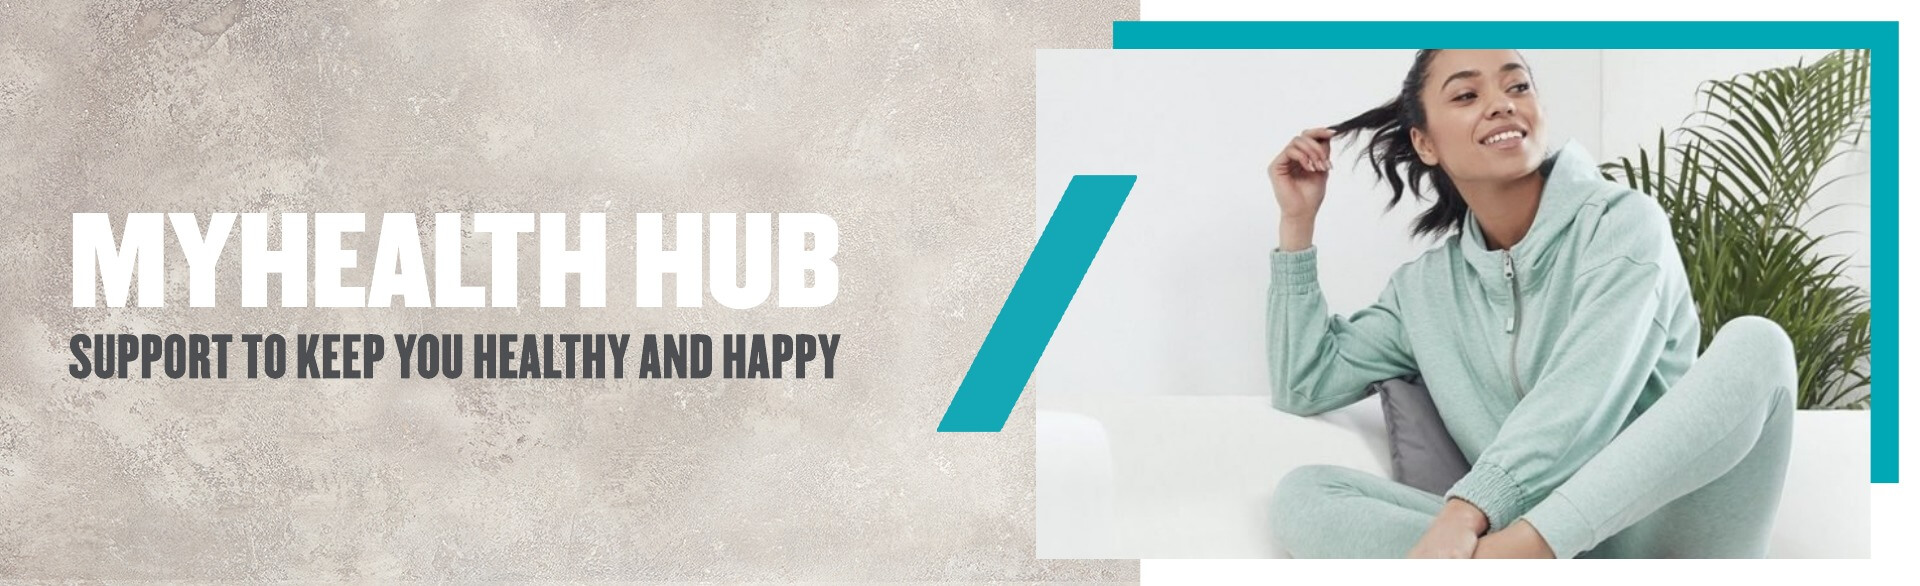 Health hub - stay happy at home